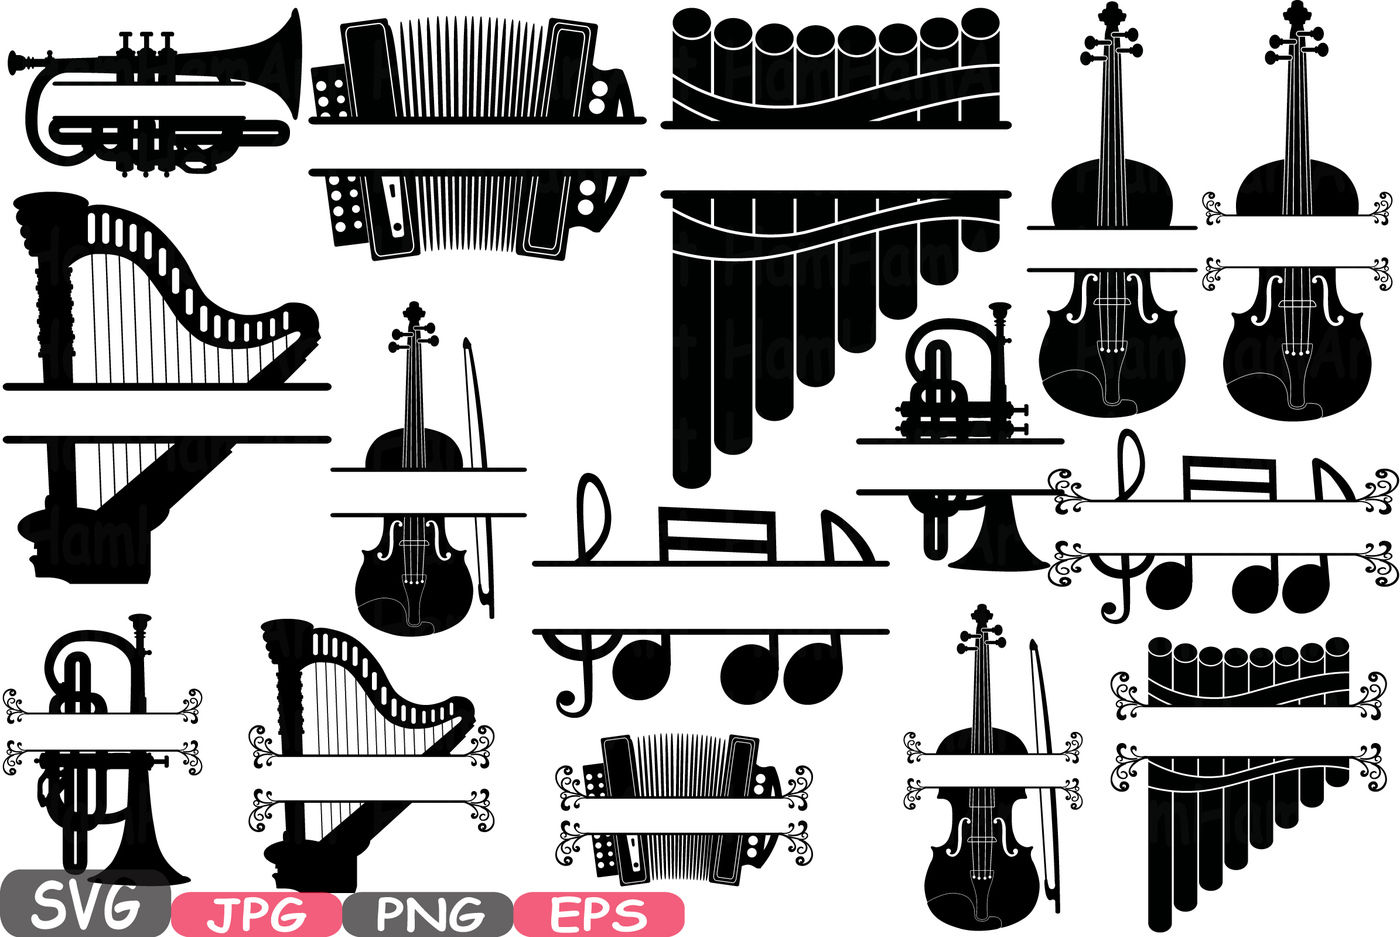 Music Instruments Split Circle Frame Silhouette Svg Music Note Printable Clipart Panpipe Accordion Violin Trumpet Harp Graphic Design 613s By Hamhamart Thehungryjpeg Com